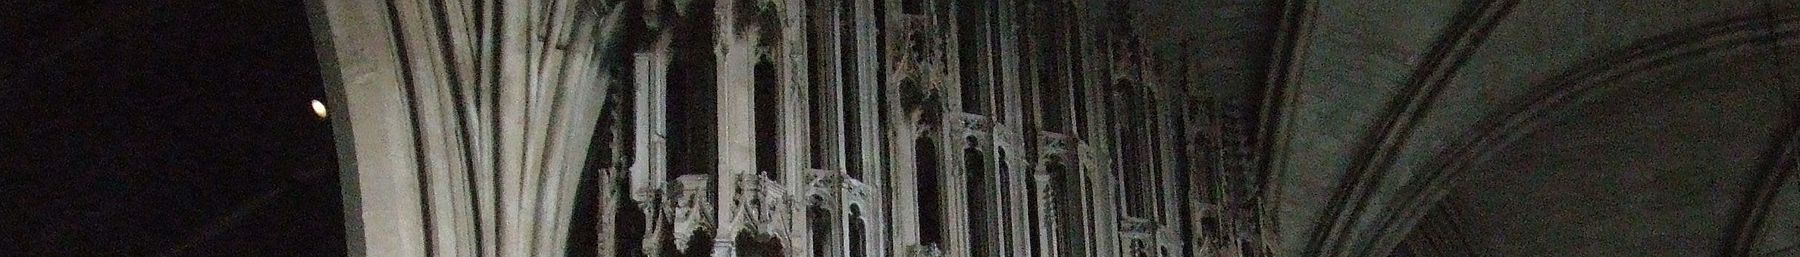 WV banner Winchester cathedral ceiling.jpg